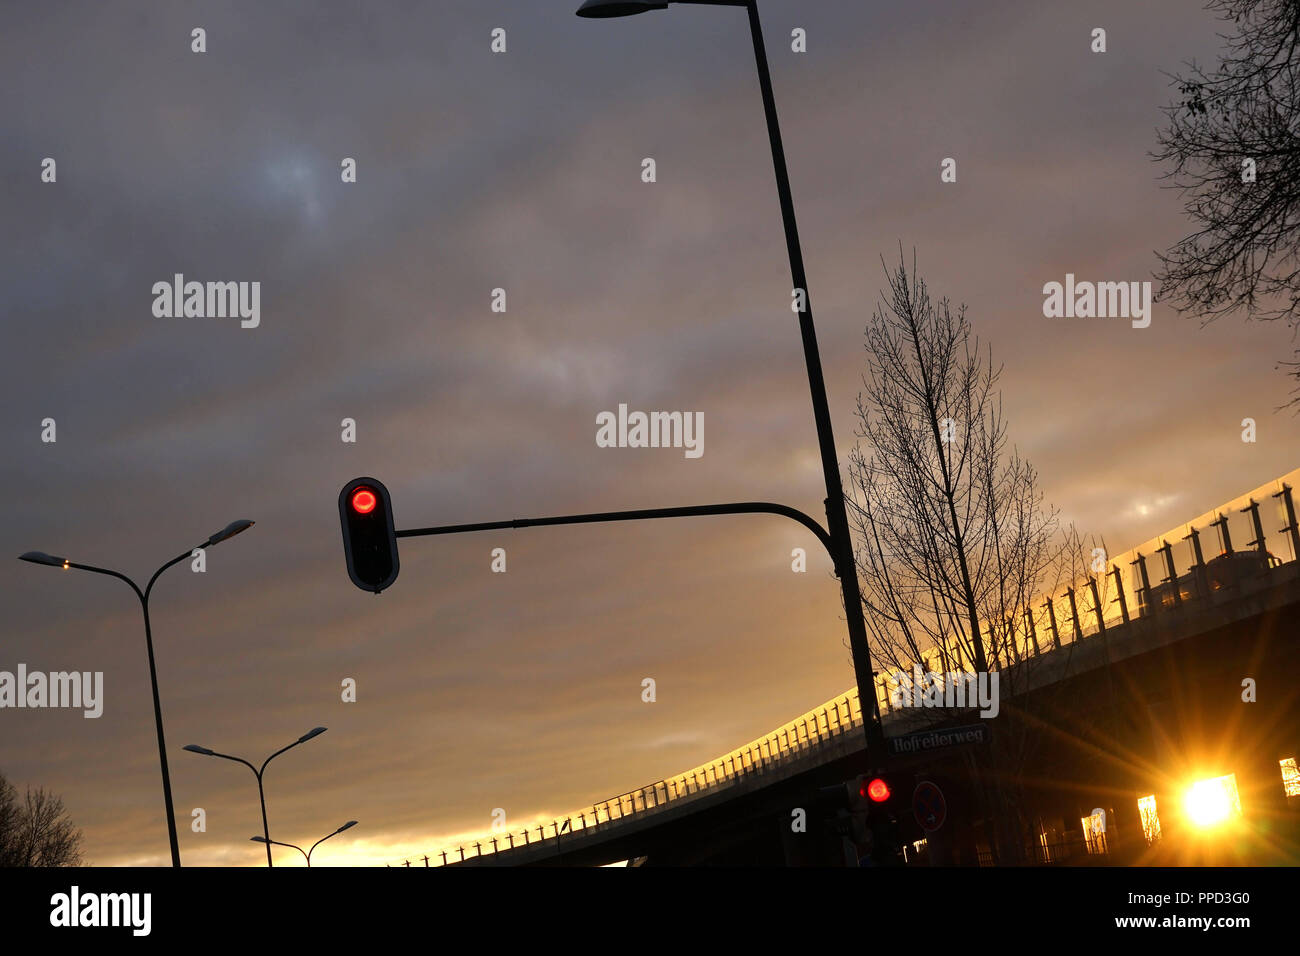 Evening mood at the entrance to the A9 motorway Munich - Nuremberg ('Tatzelwurm') at Freimann. - Stock Image